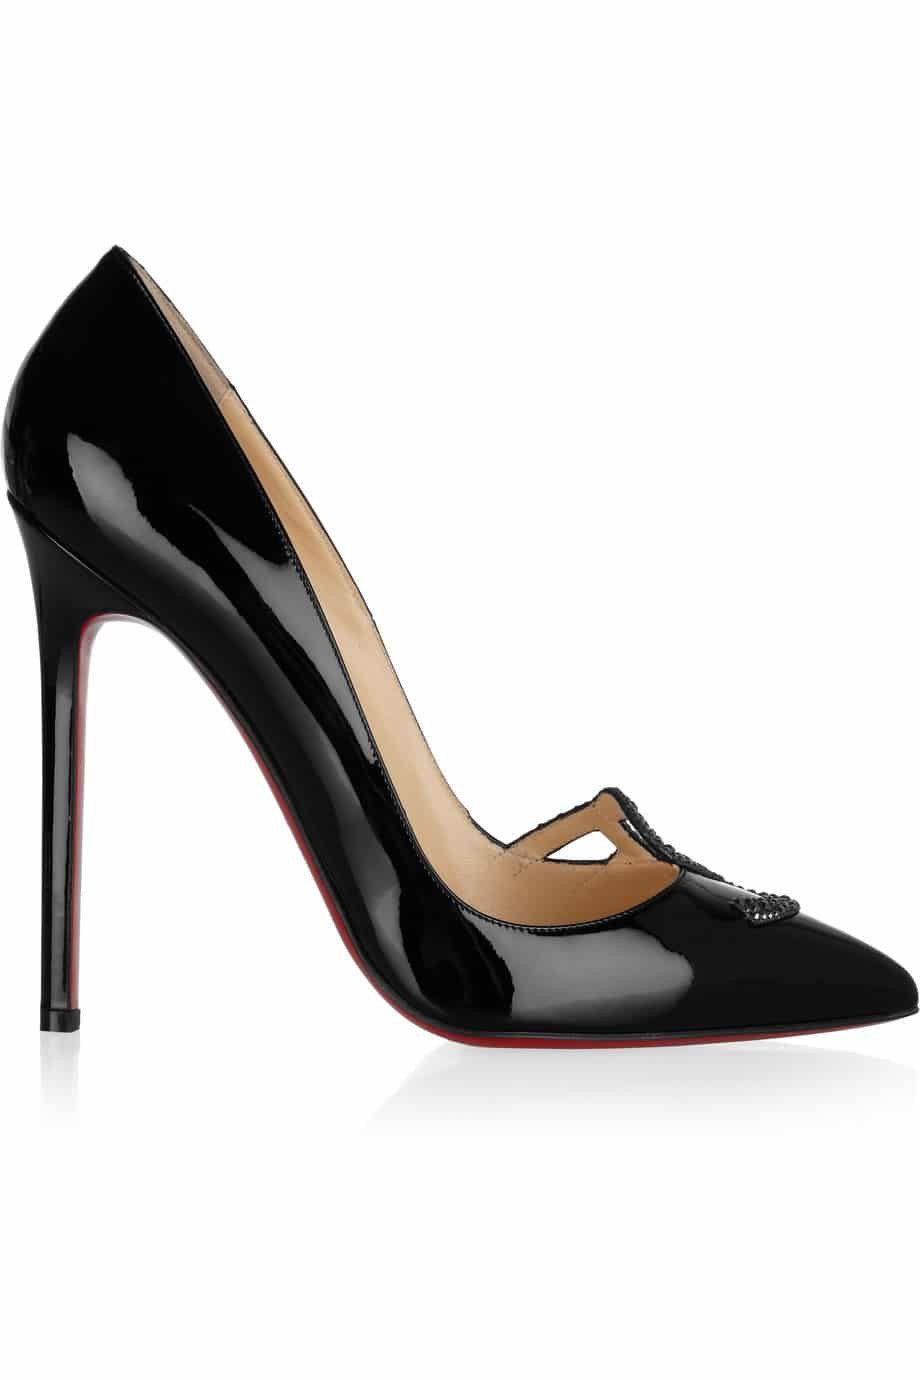 christian louboutin schuhe zeigen sex. Black Bedroom Furniture Sets. Home Design Ideas